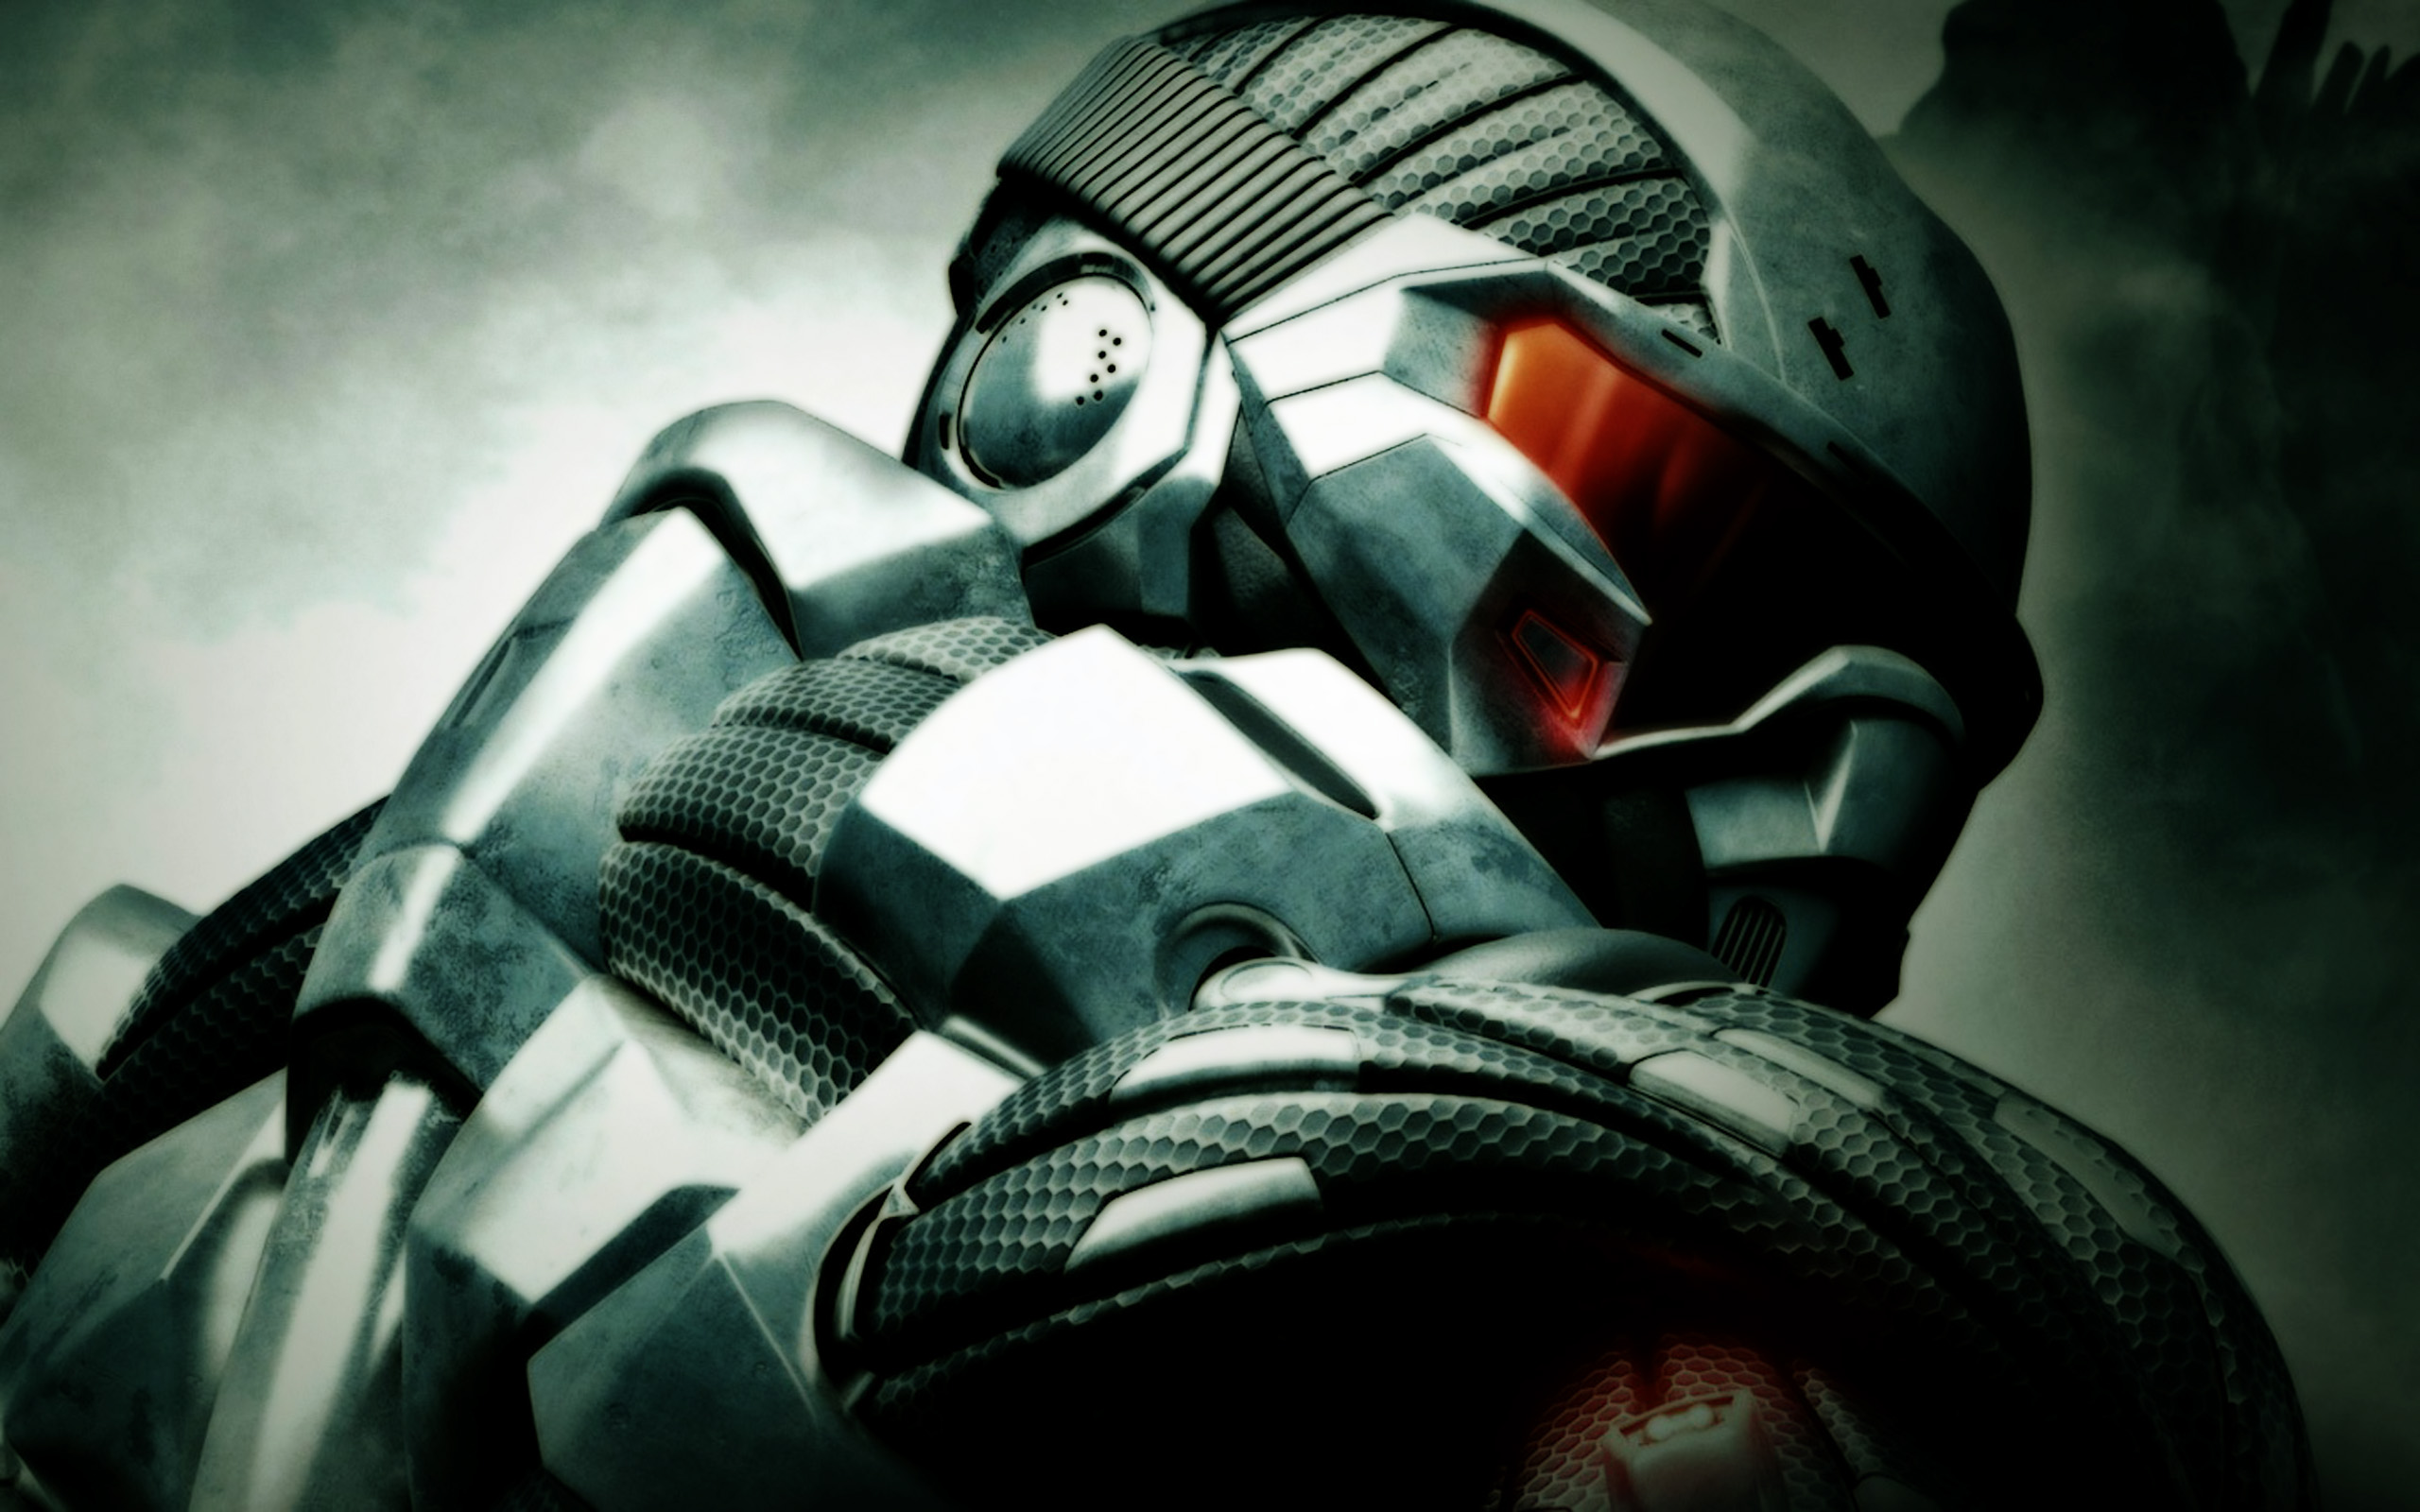 Robot Wallpapers High Quality Download Free